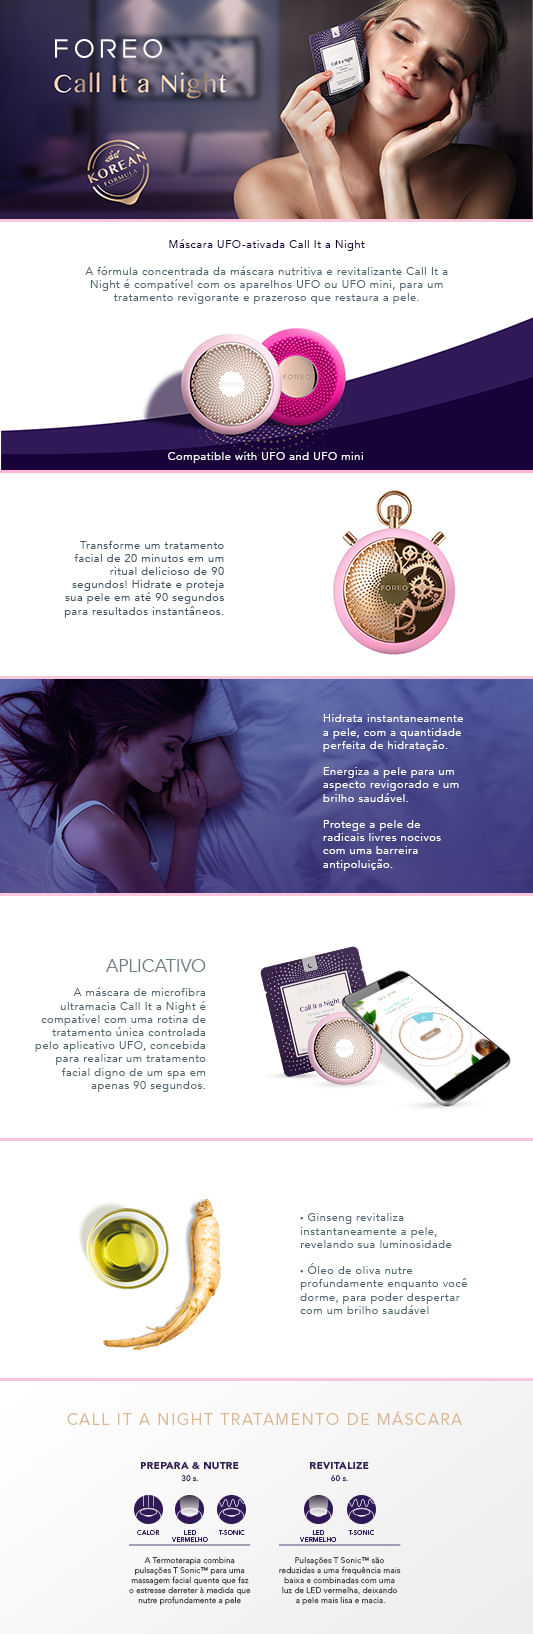 Máscara Facial Foreo - UFO Call It a Night